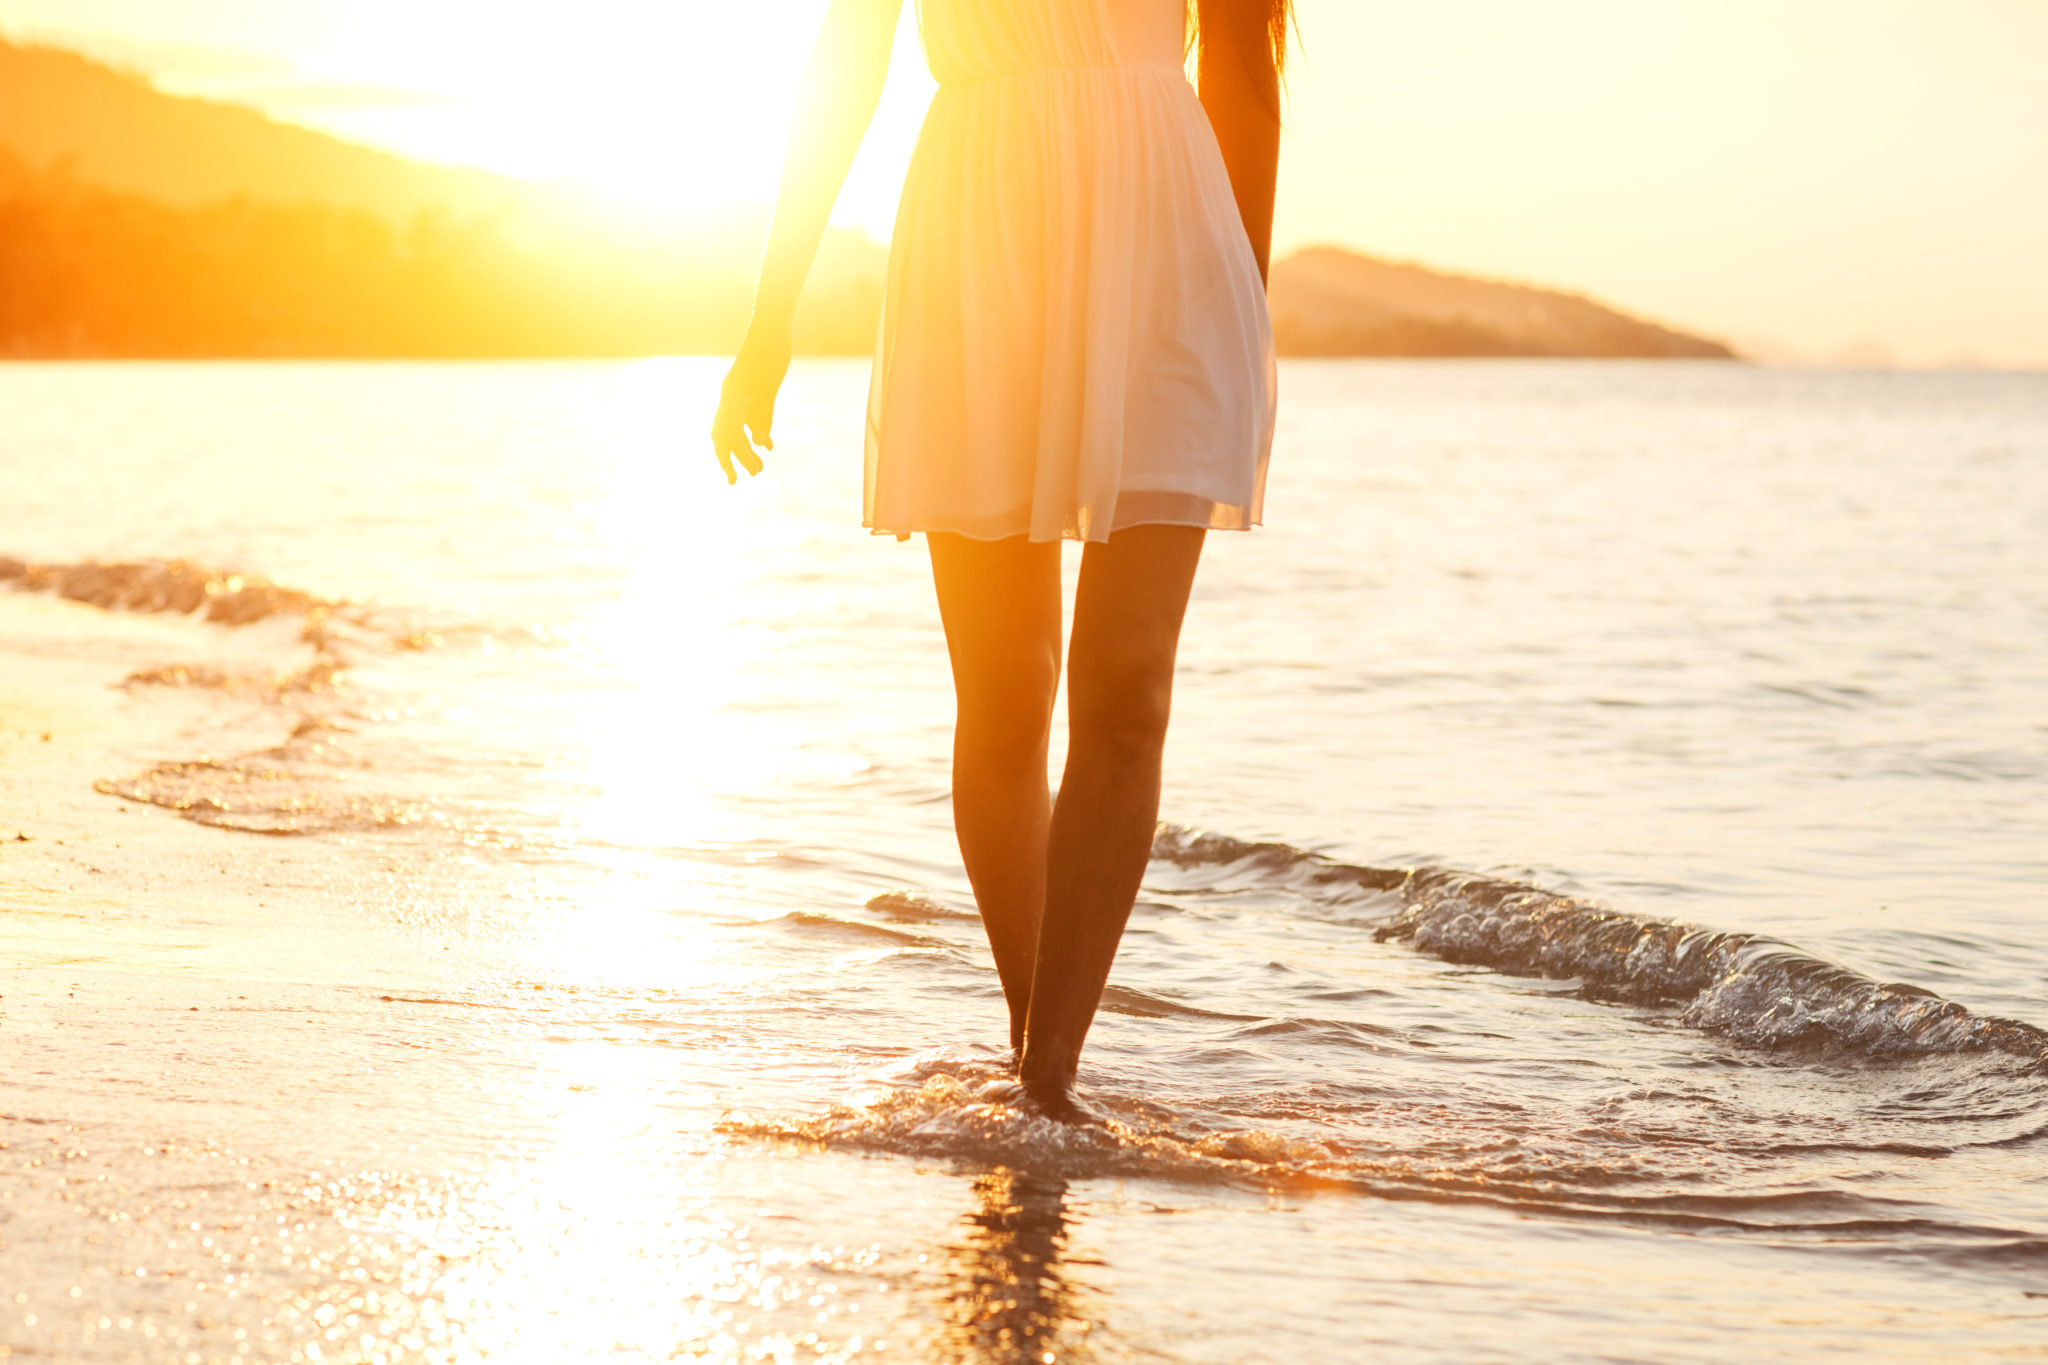 The Life Cleanse: 6 Steps to Letting Go of Toxic Relationships